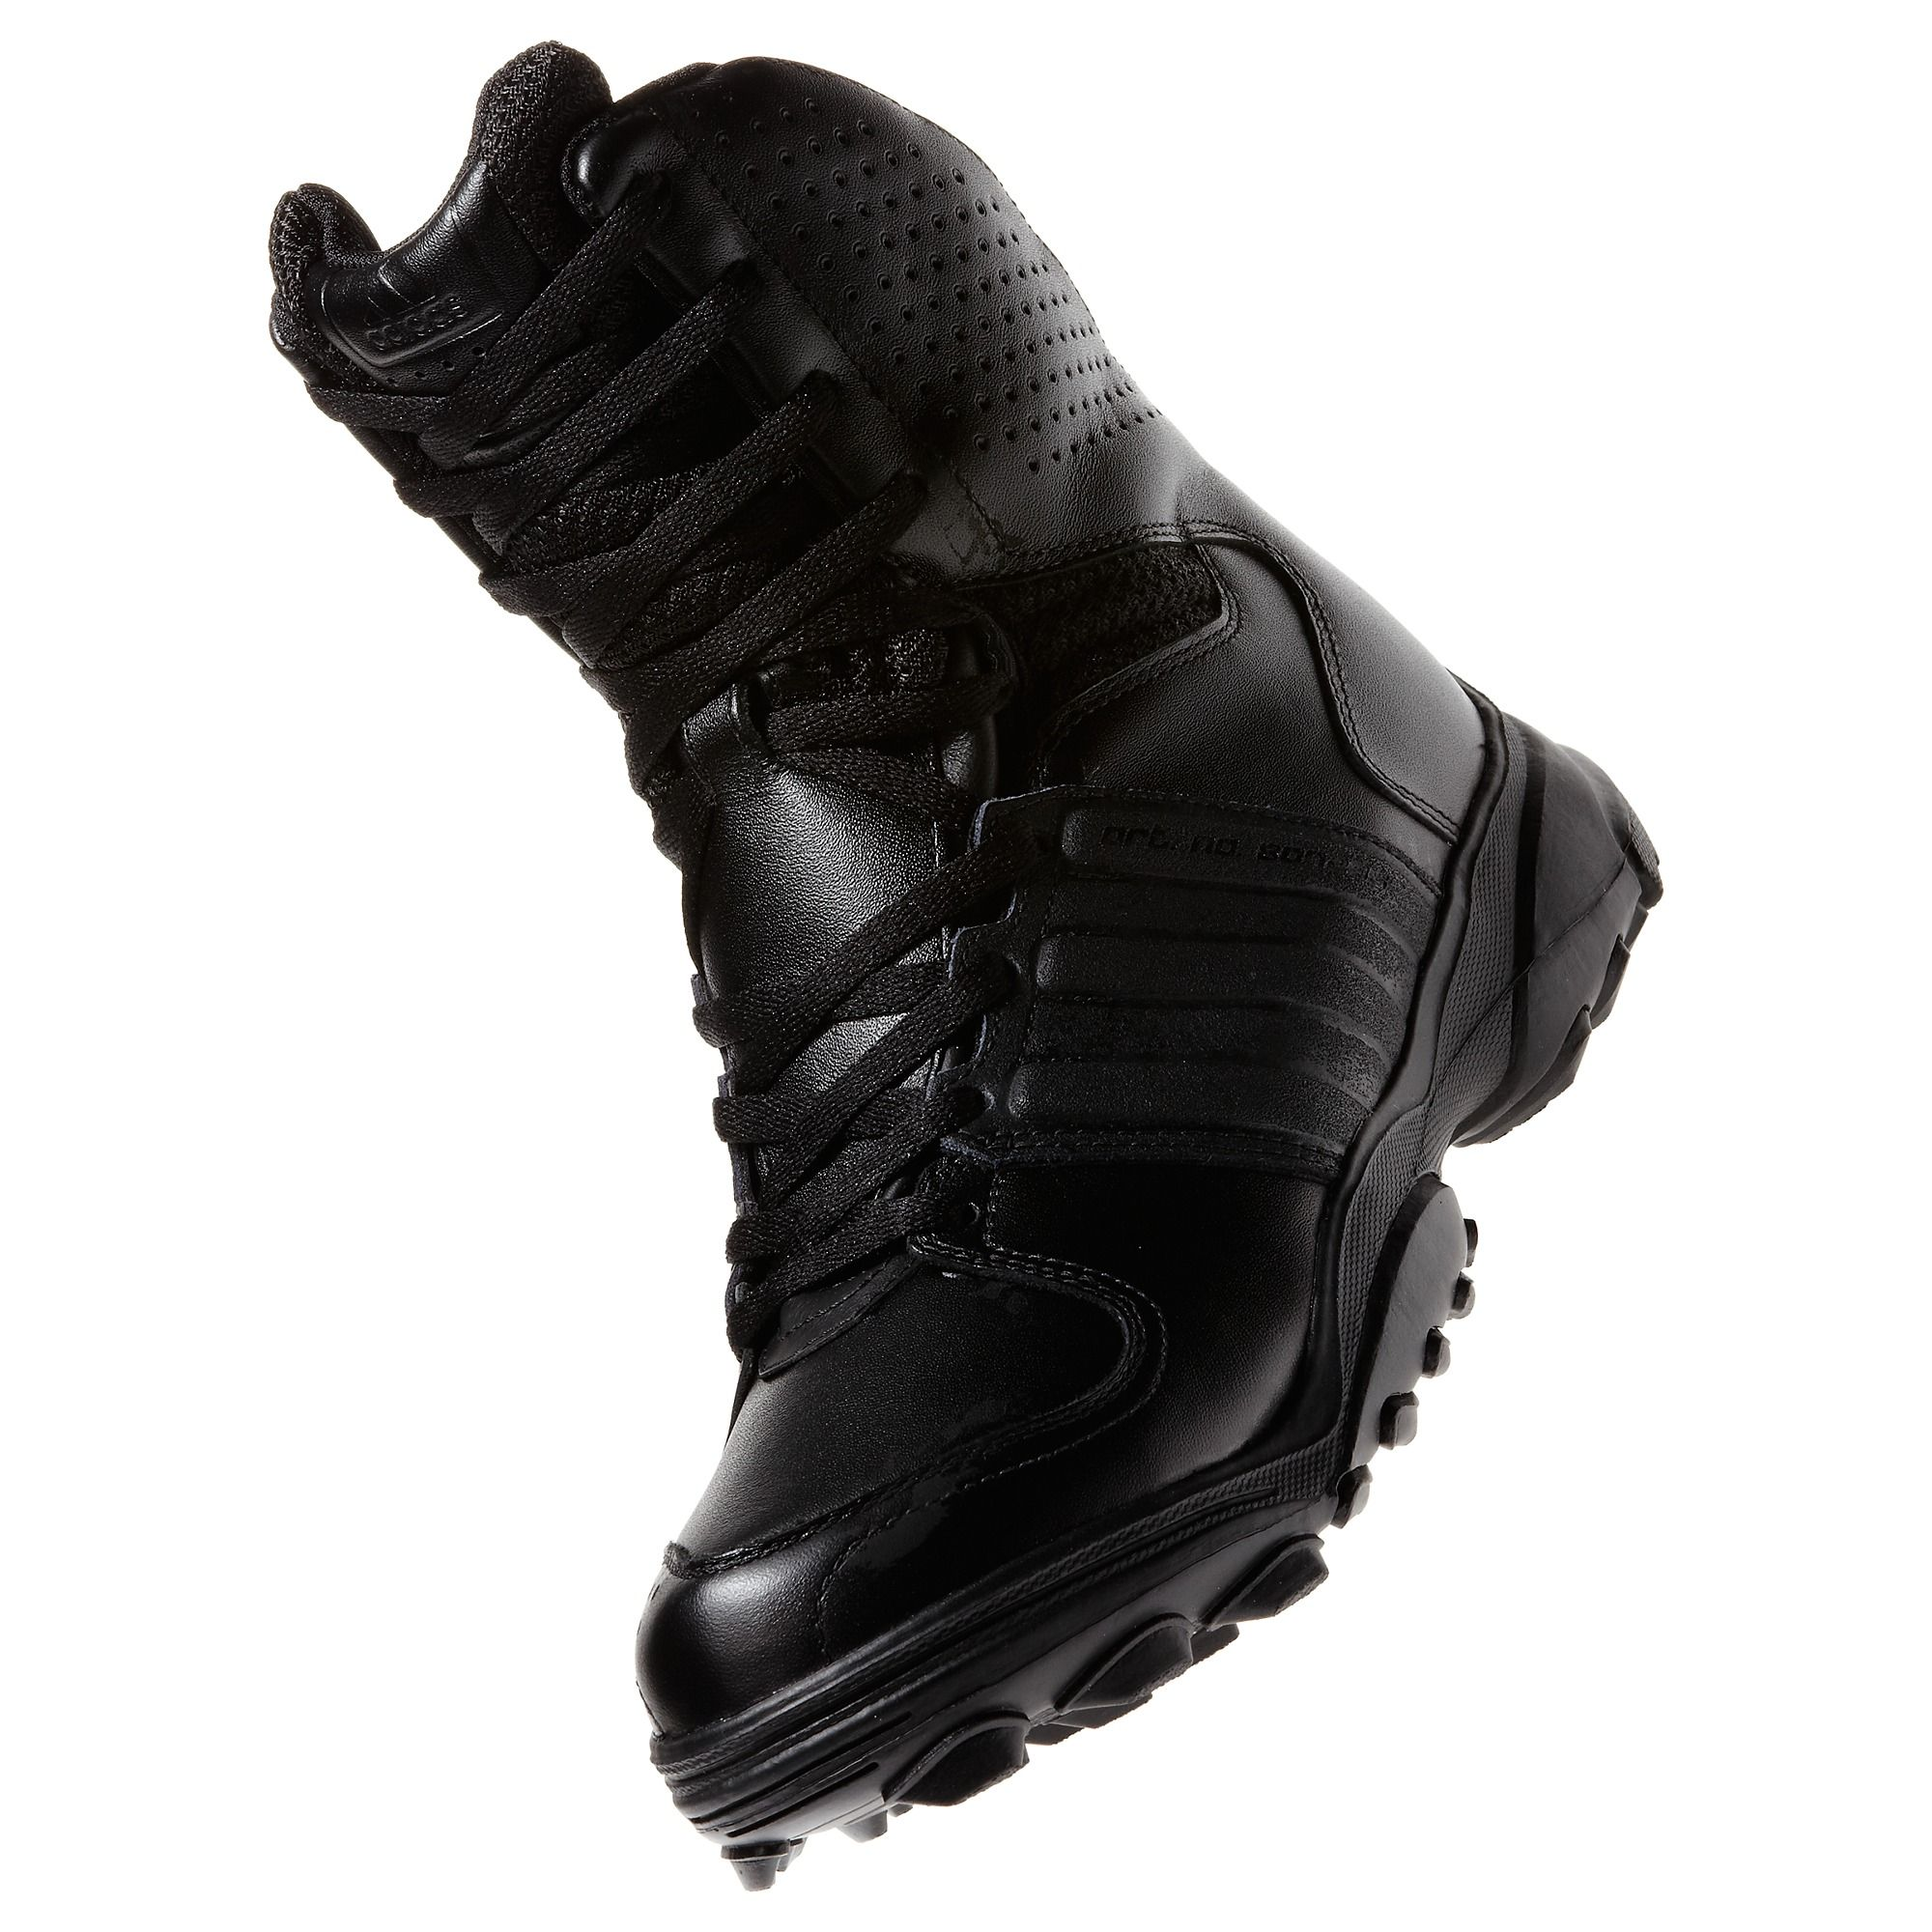 Perforación Pantalones Derribar  Footwear :: Light Field Boots :: Adidas - GSG-9.2 High Boots, Black